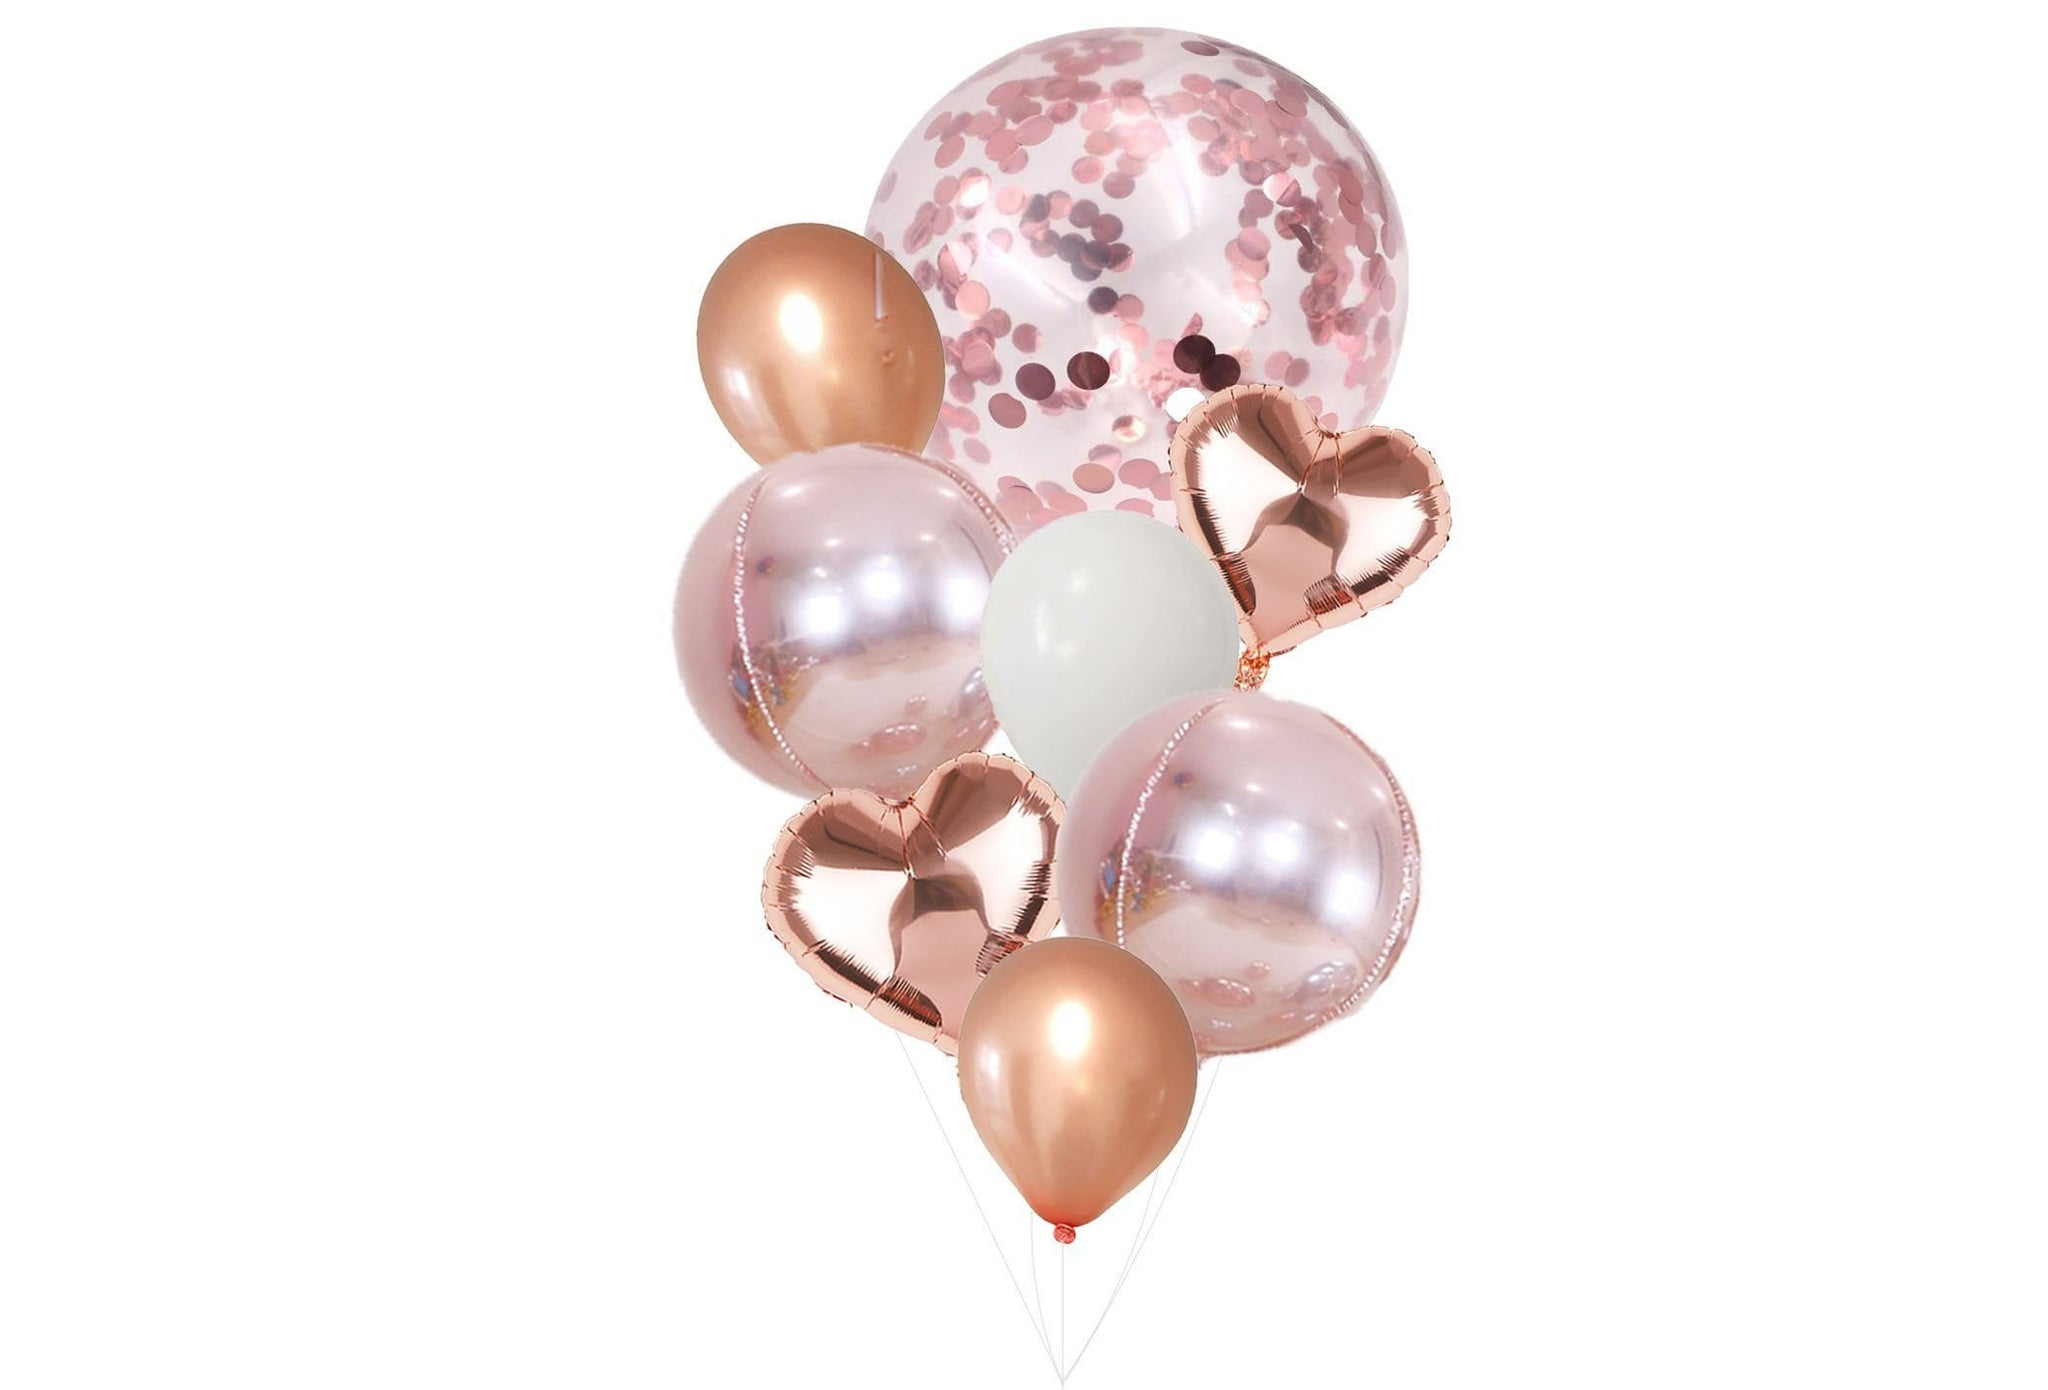 Rose Gold Balloons Balloon Bouquet Bundle With Confetti Balloons Glamcelebration